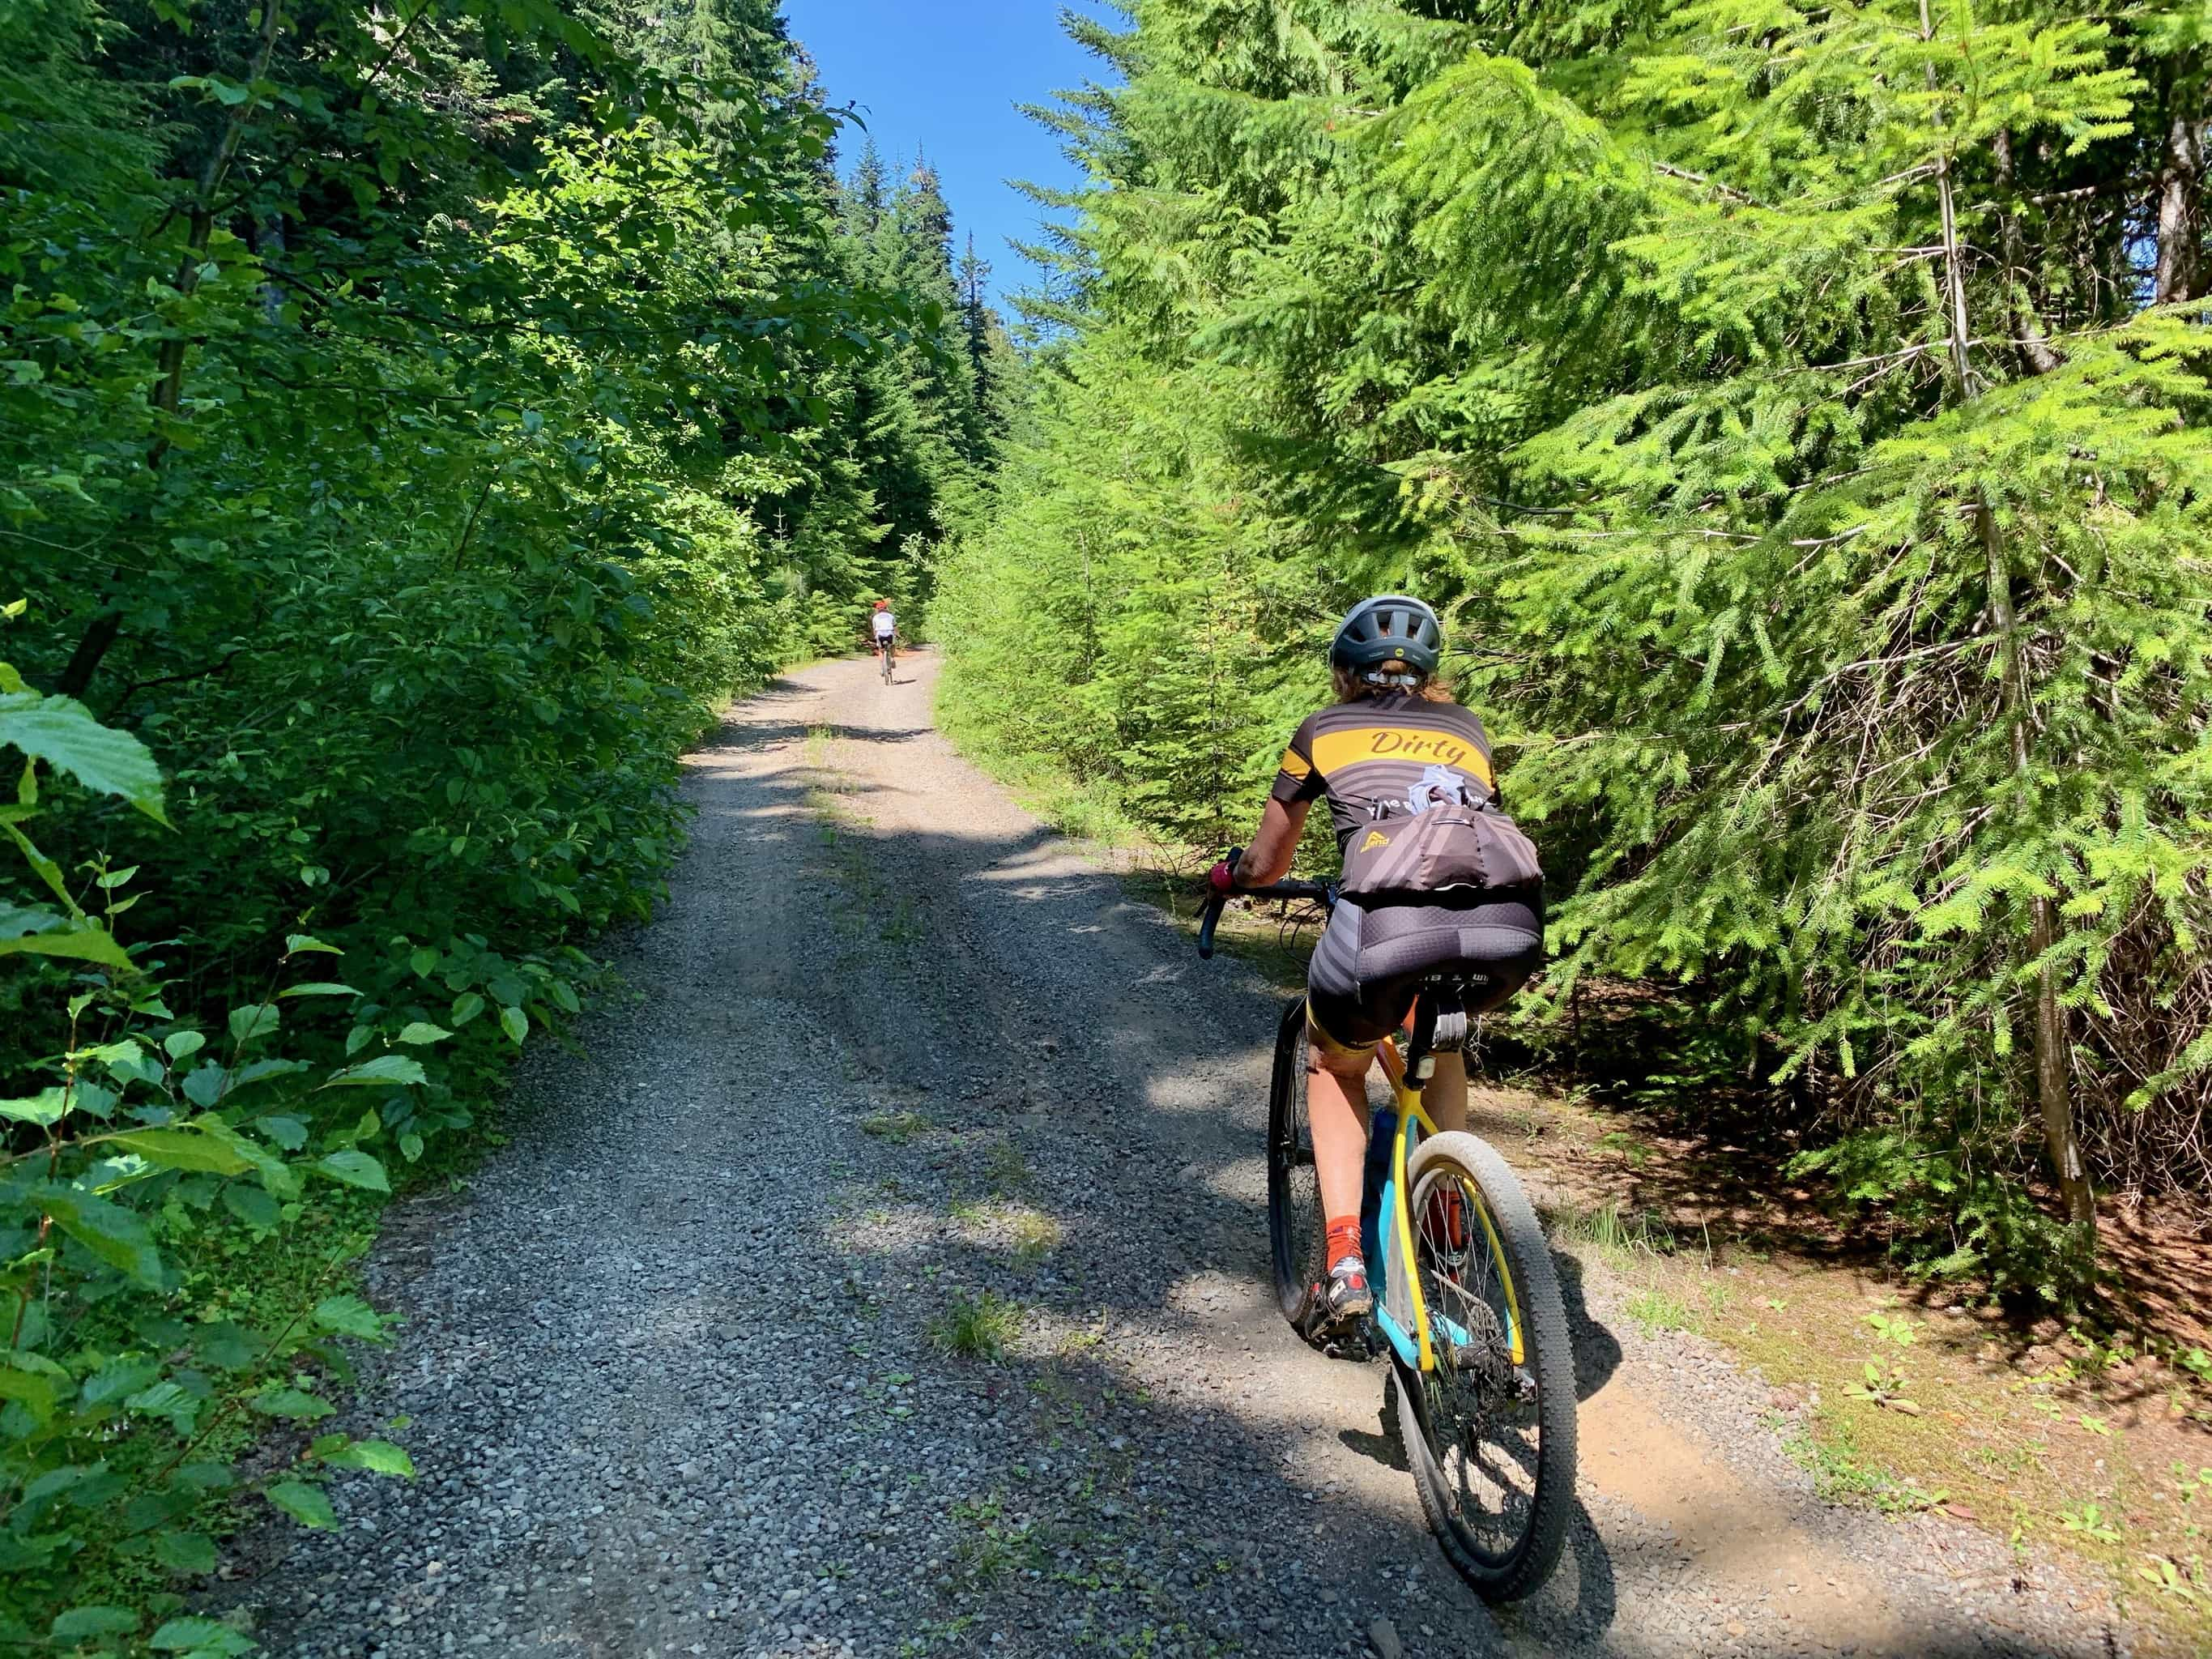 Gravel cyclist on the more primitive NF-58 in Gifford Pinchot National forest in Washington State.